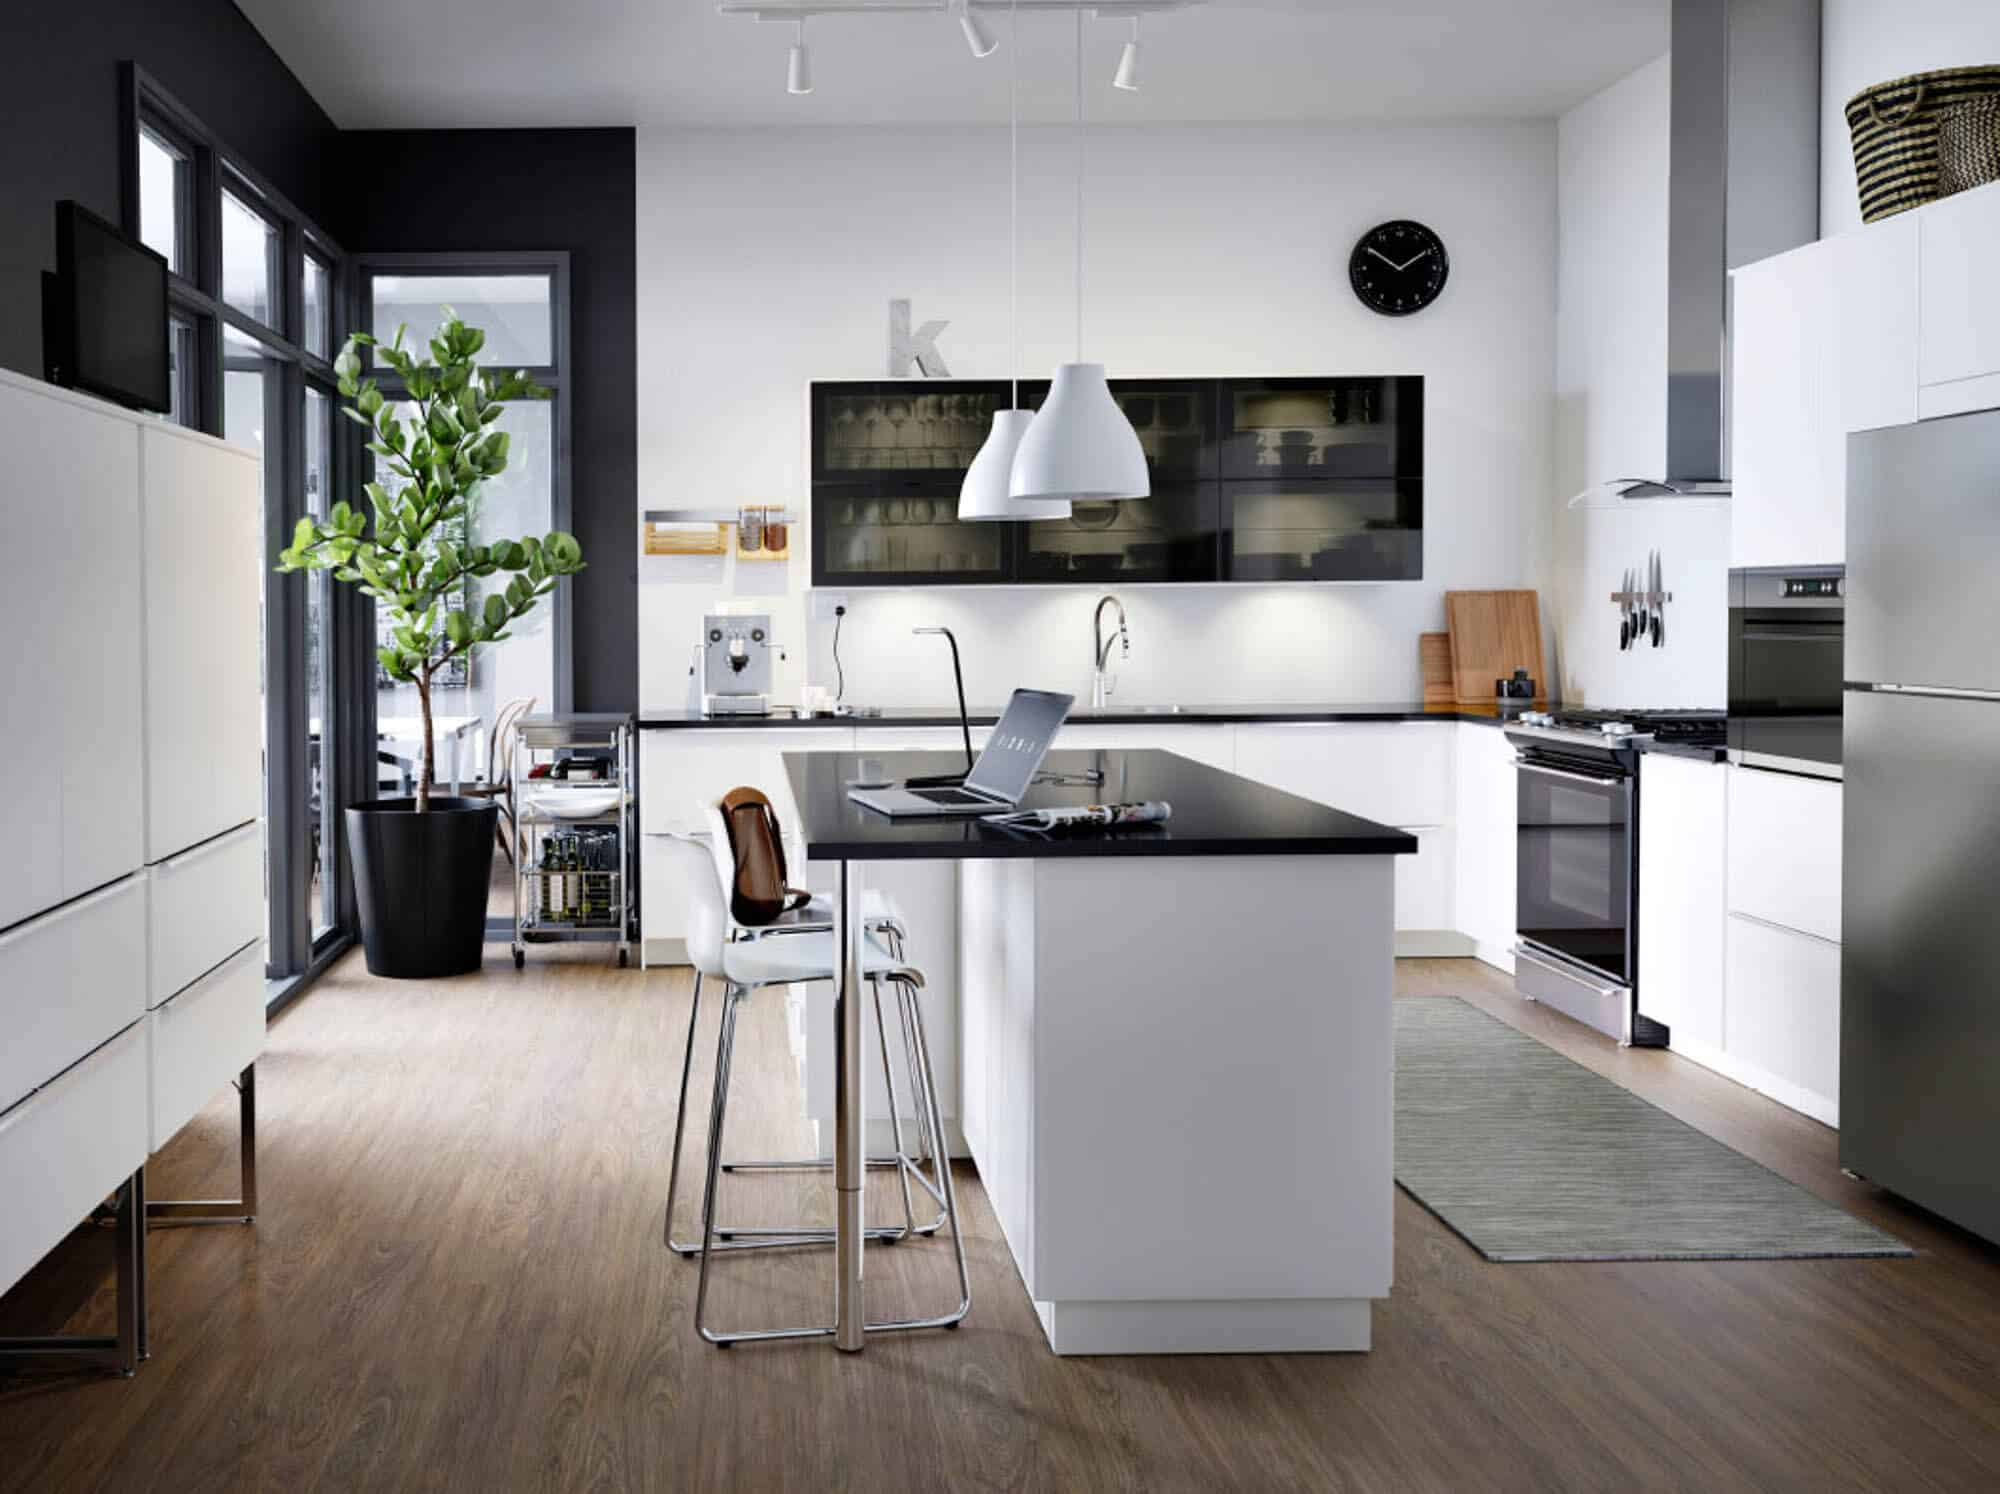 Kitchen Ideas: Kitchen Decor & Style Ideas